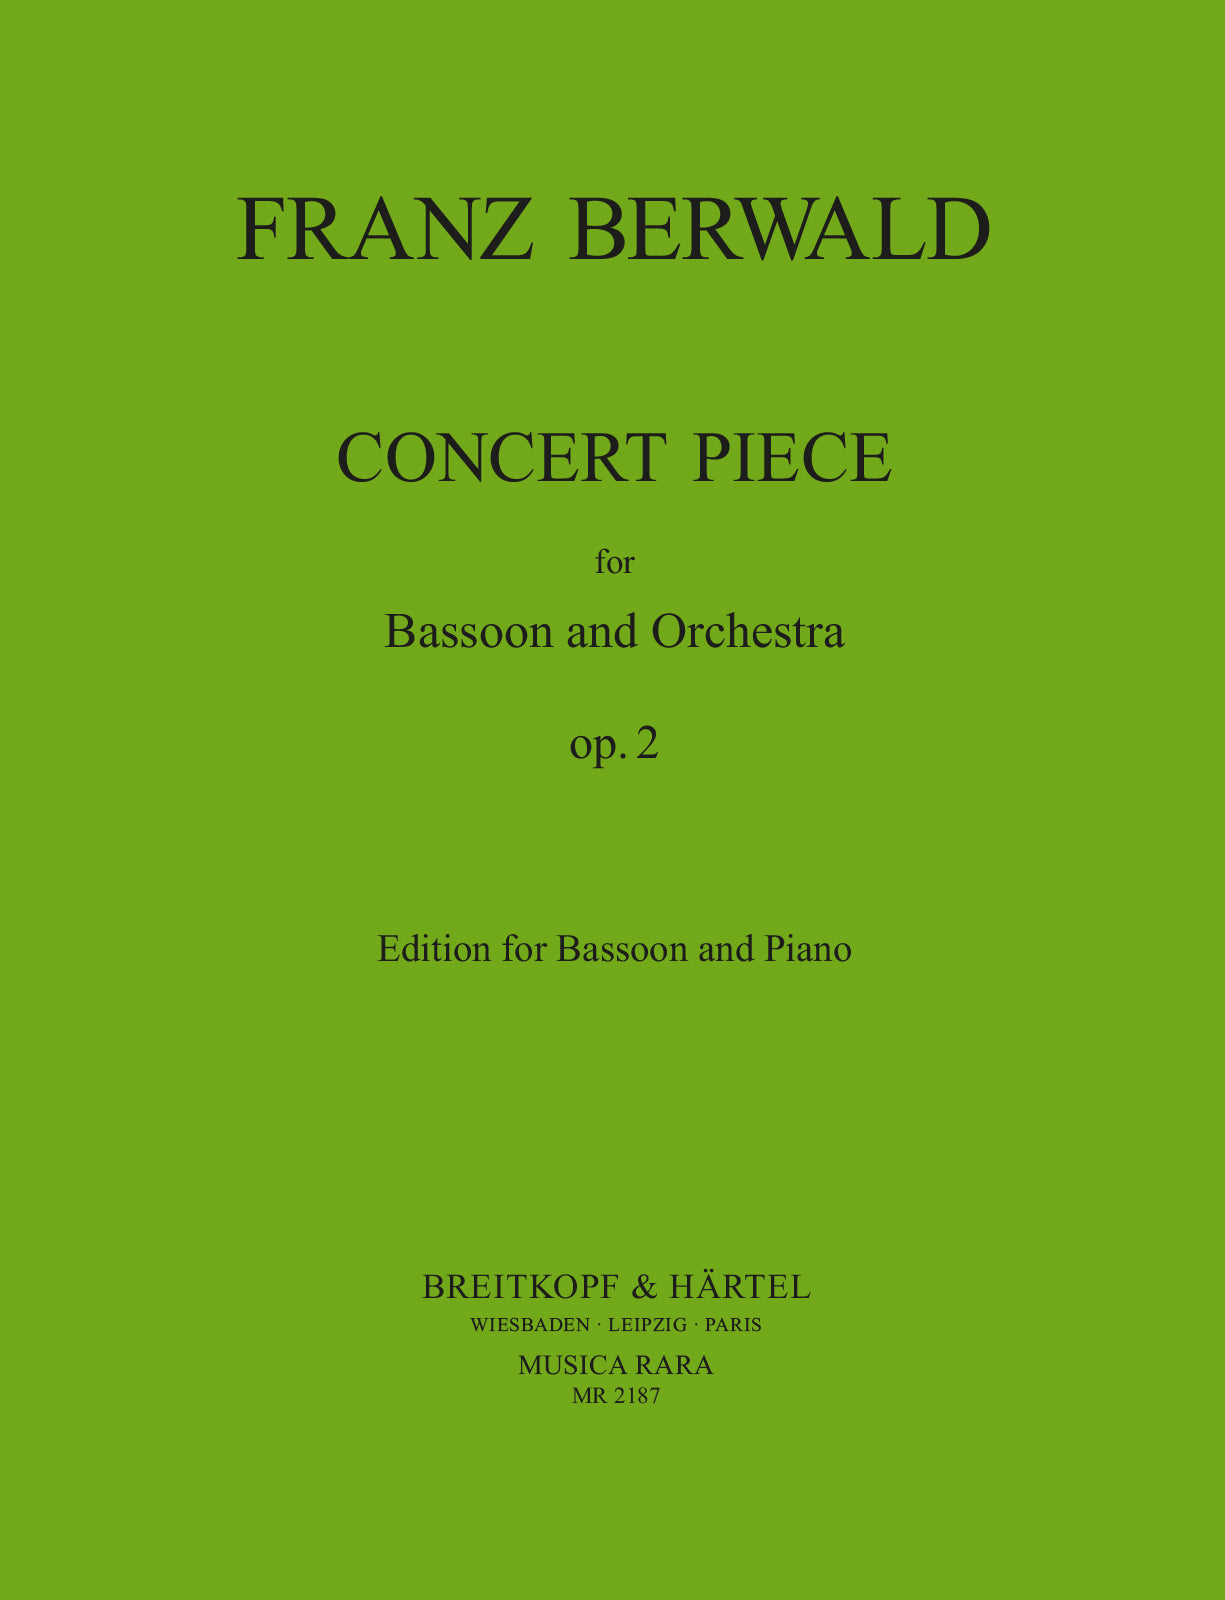 Berwald: Concert Piece in F Major, Op. 2